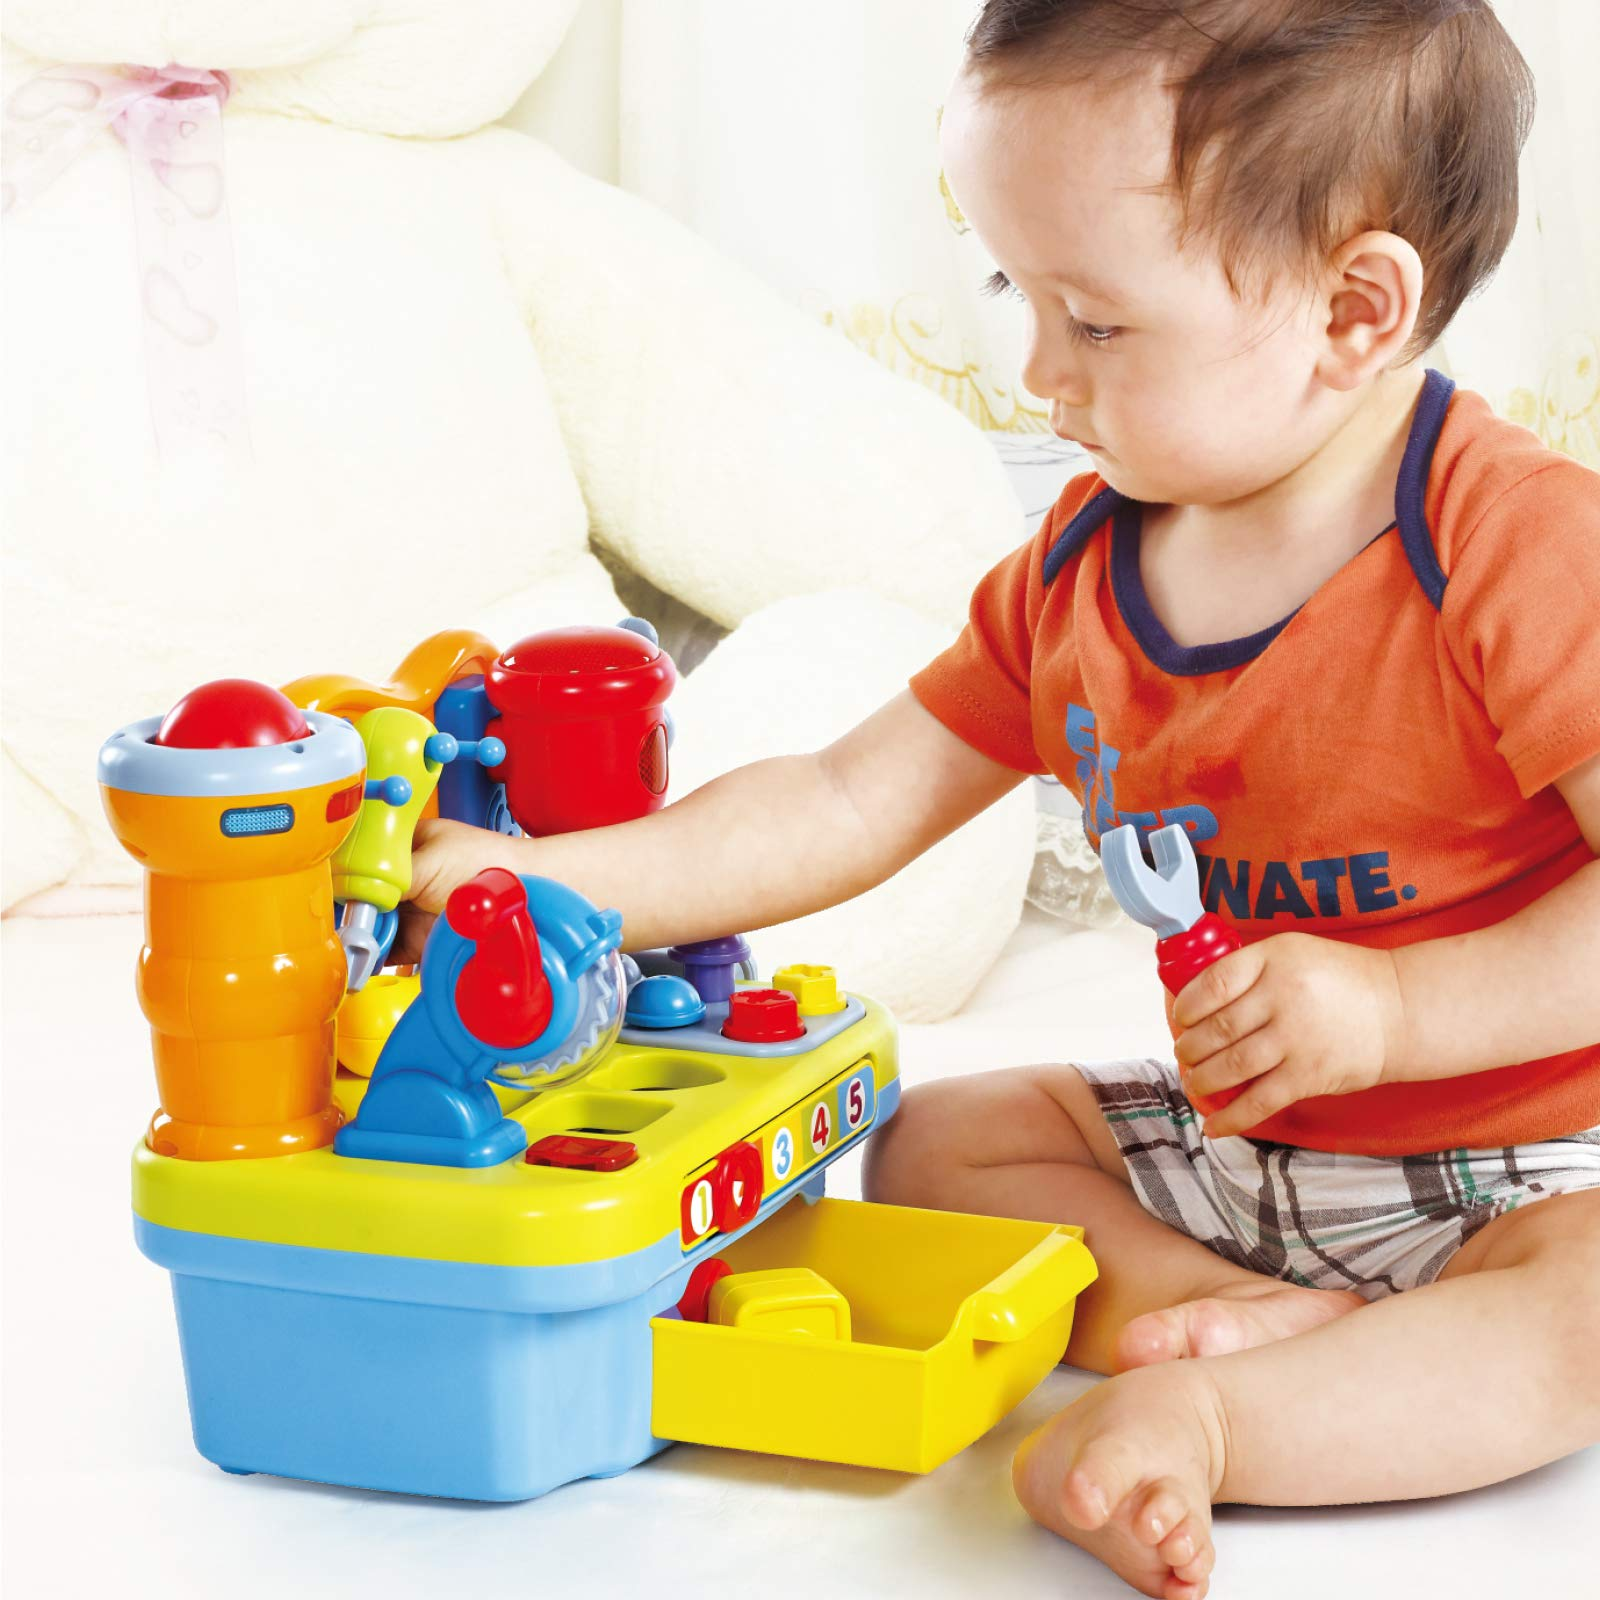 Woby Multifunctional Musical Learning Tool Workbench Toy Set for Kids with Shape Sorter Tools by Woby (Image #5)